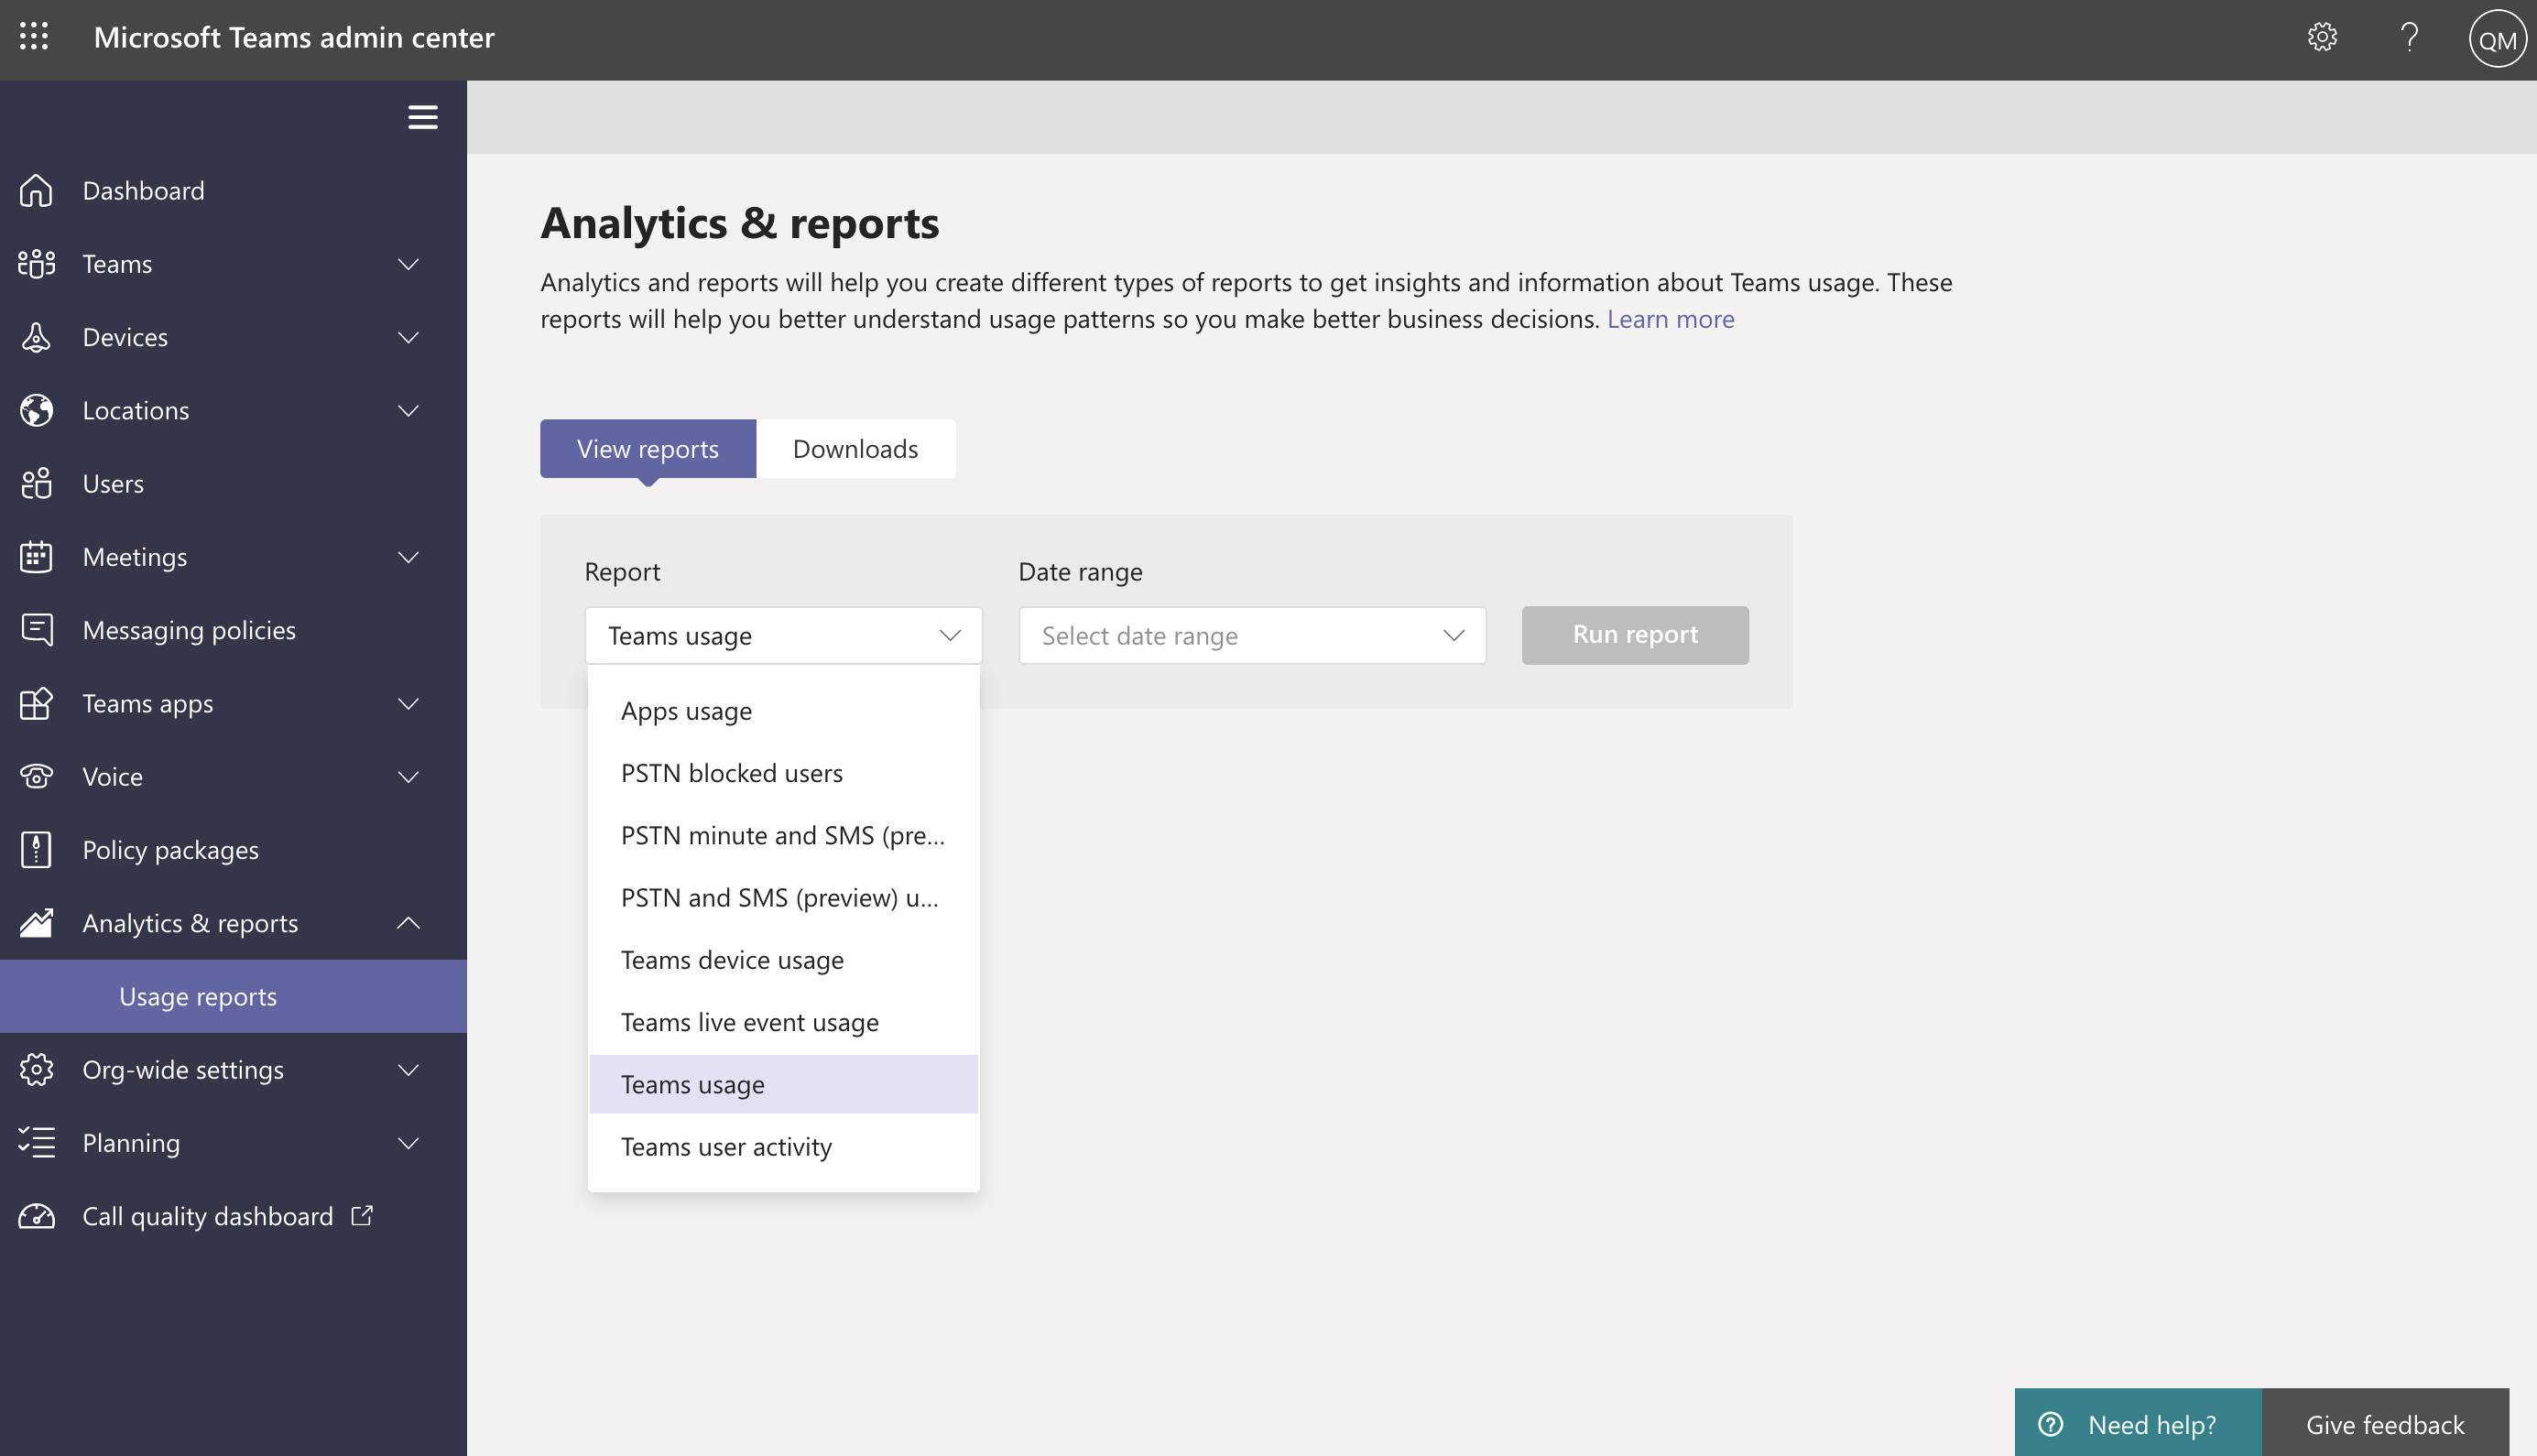 Screenshot of Usage reports in Teams admin center.